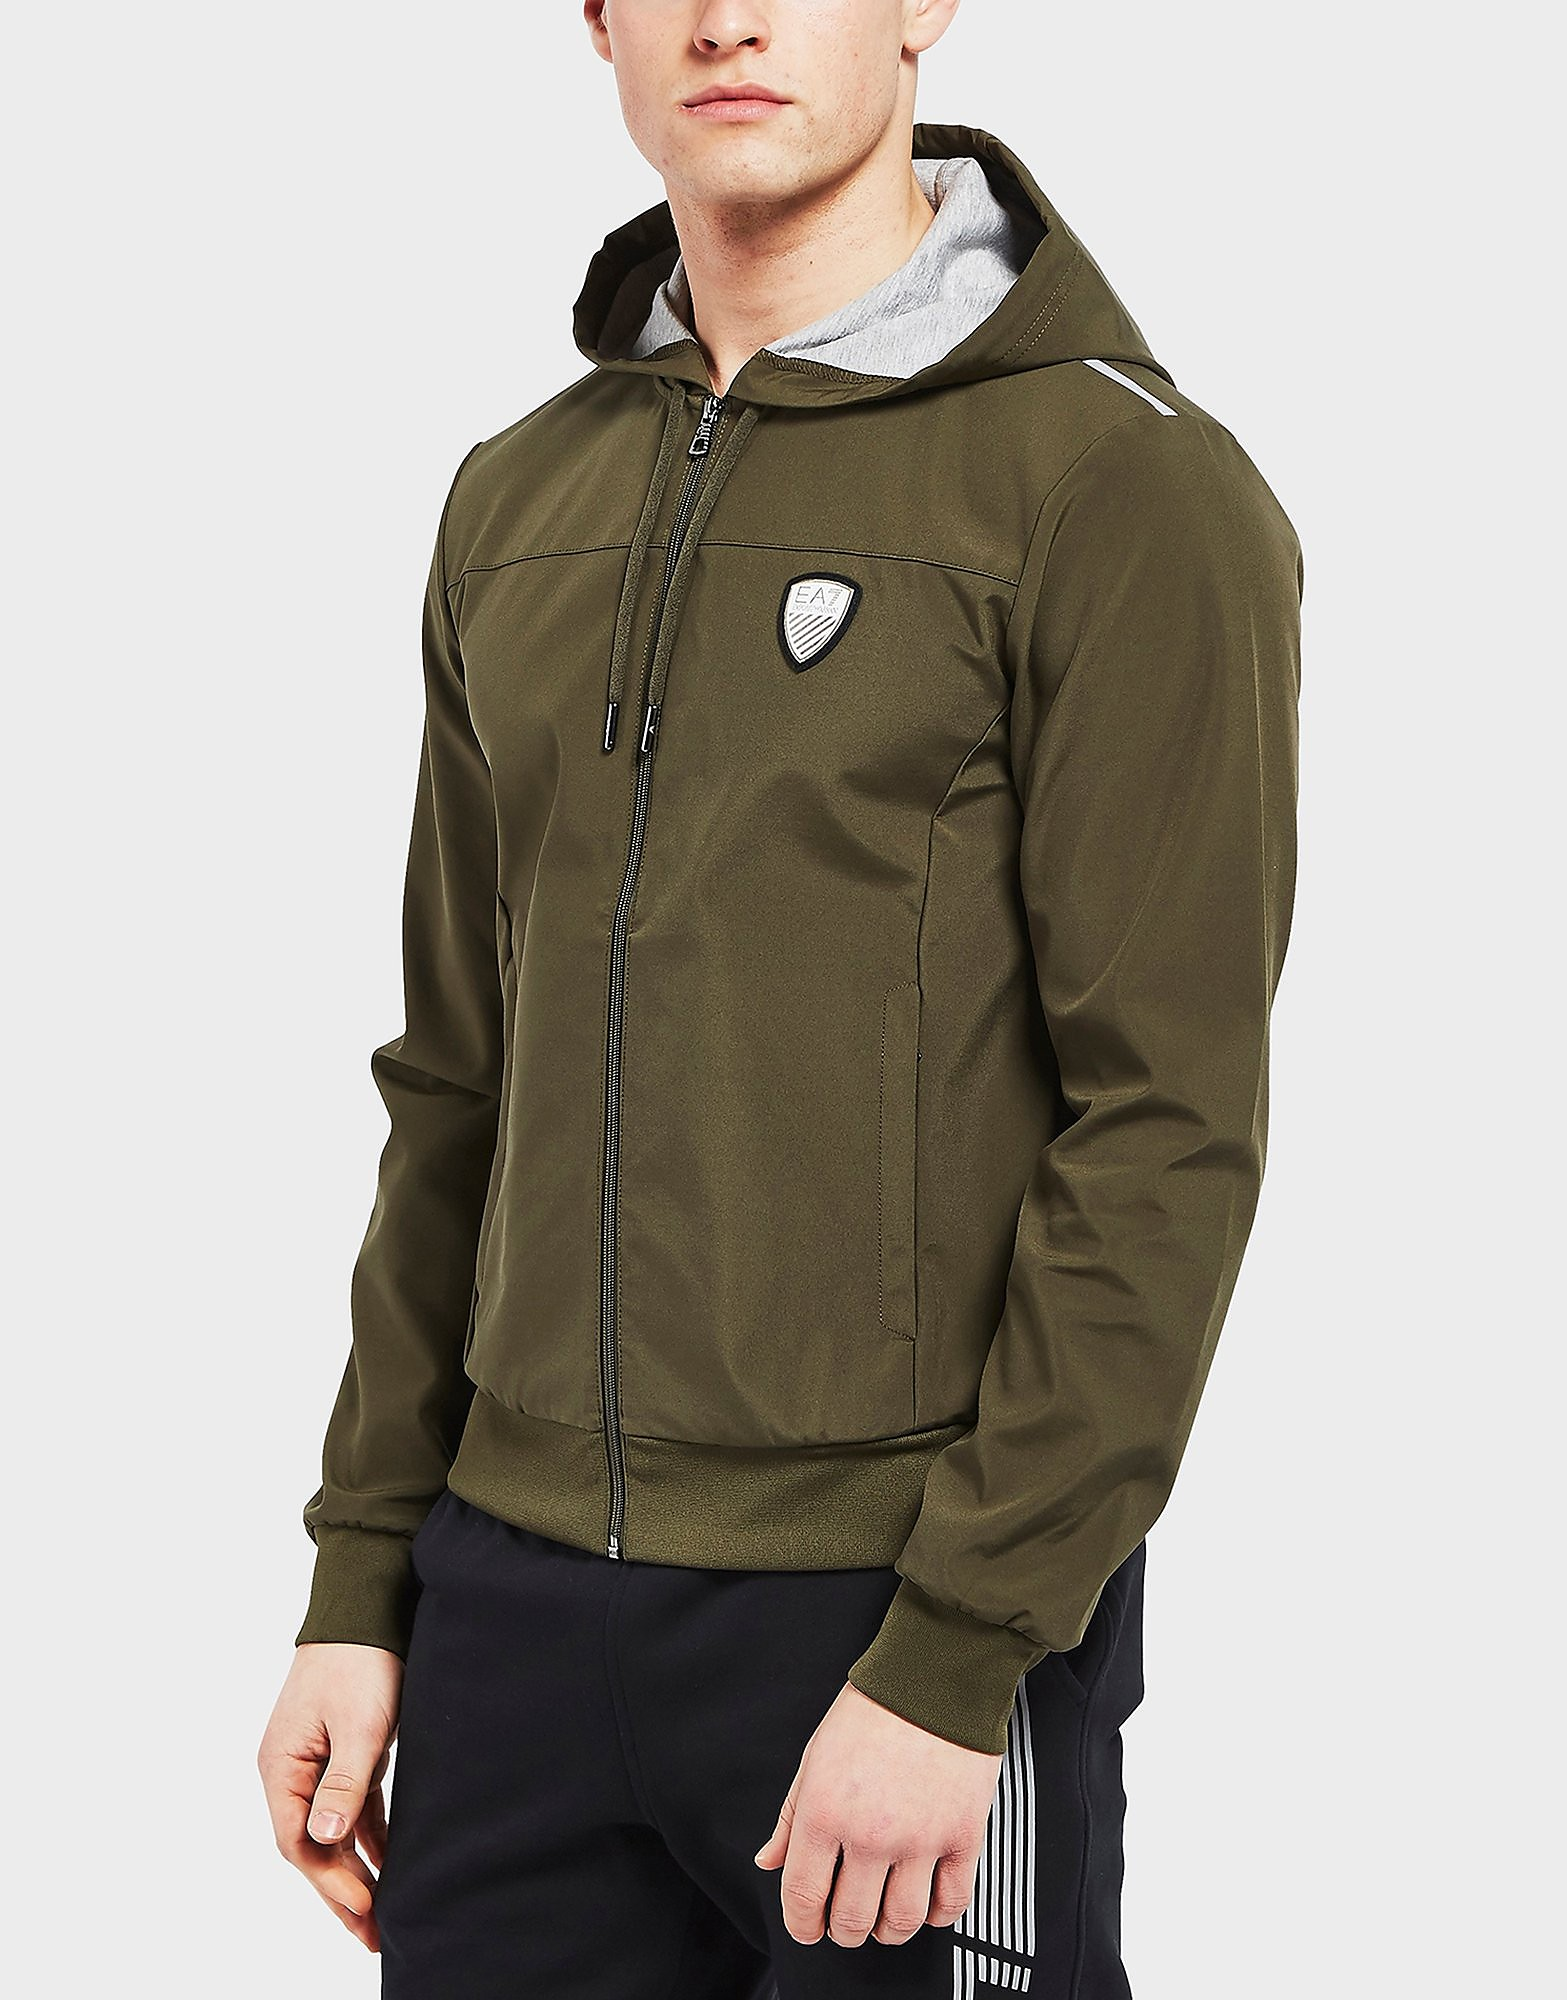 Emporio Armani EA7 Softshell Full Zip Hoodie - Exclusive